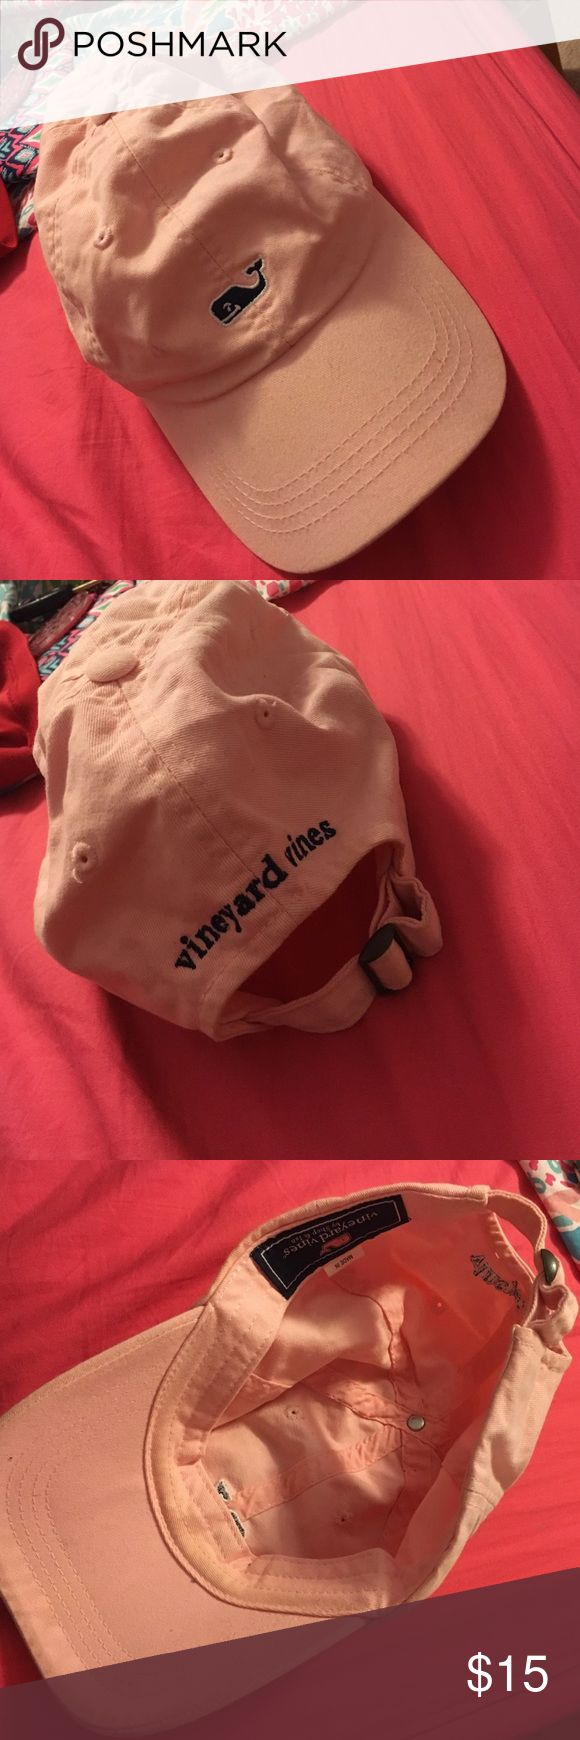 Vineyard vines hat Pink vineyard vines hat worn maybe 3 times! Small mark on the front next to the whale as shown in the last picture Vineyard Vines Accessories Hats